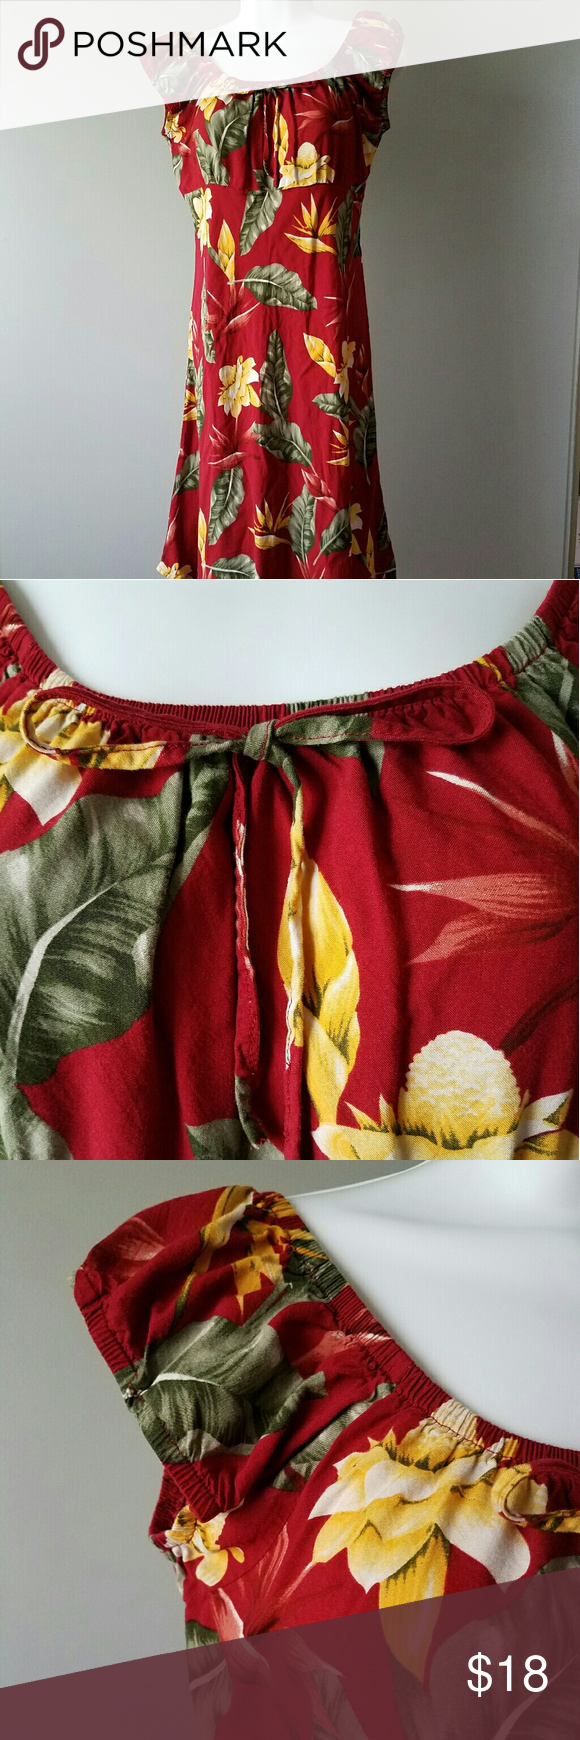 6bf59373708 Hibiscus Collection Hawaii floral beach dress Great condition. Size S.  Beach floral dress. Red color. Hibiscus Collection Hawaii Dresses Midi